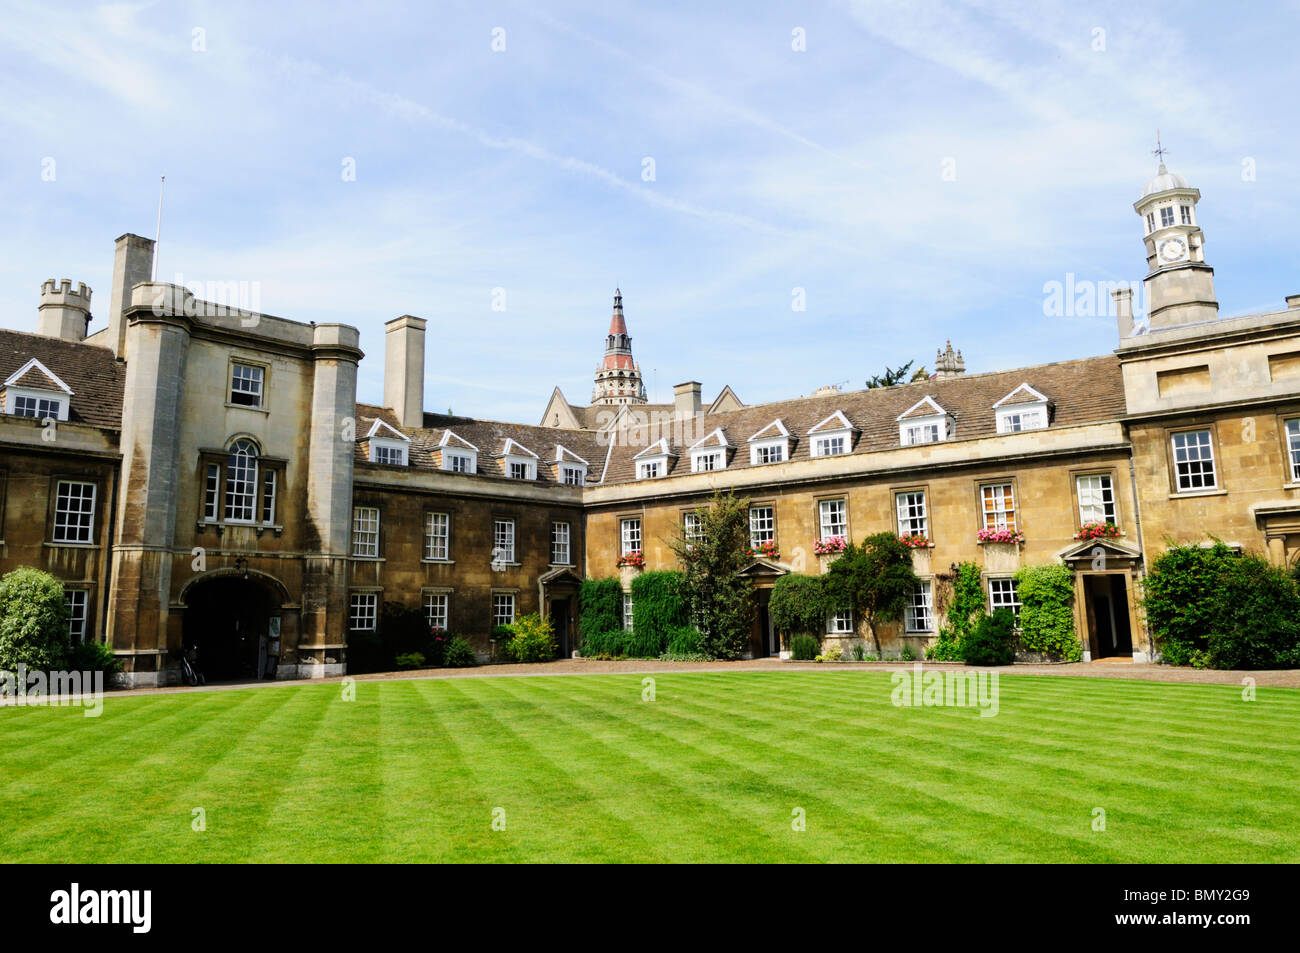 First Court at Christs College, Cambridge, England, UK - Stock Image